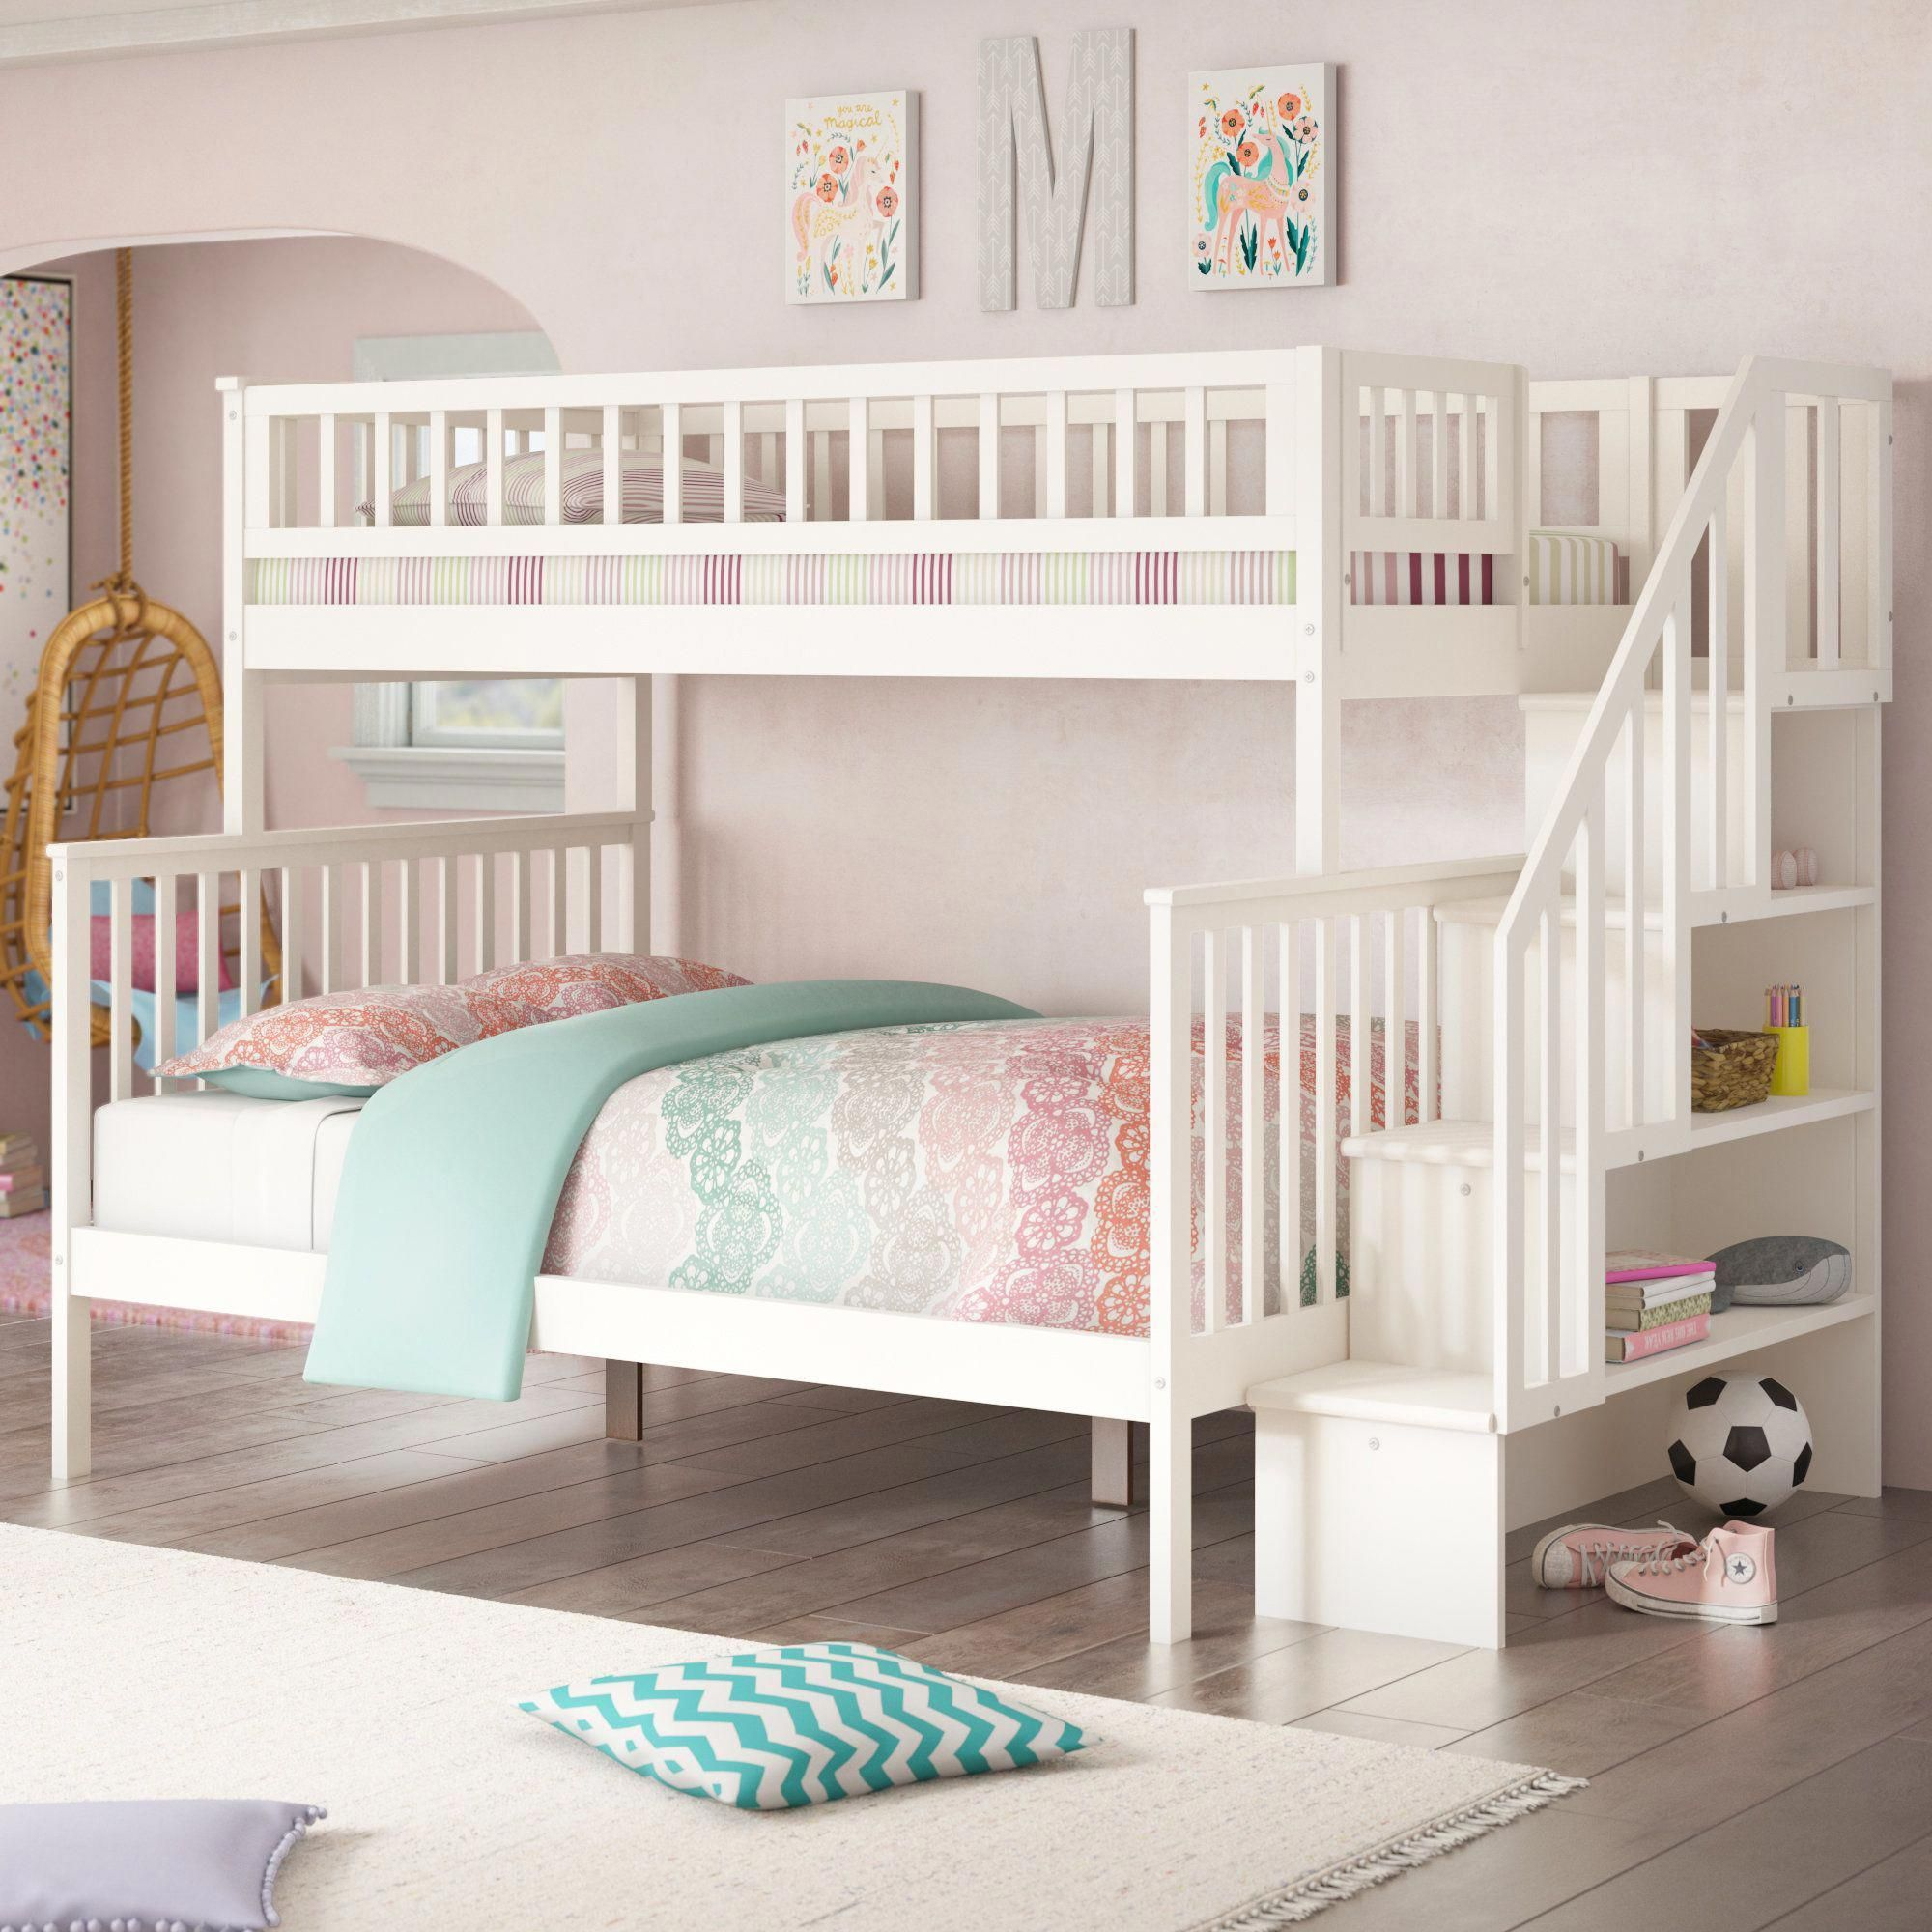 Twin Over Full Bunk Bed Kids Bunk Beds Bed For Girls Room Bunk Beds With Drawers